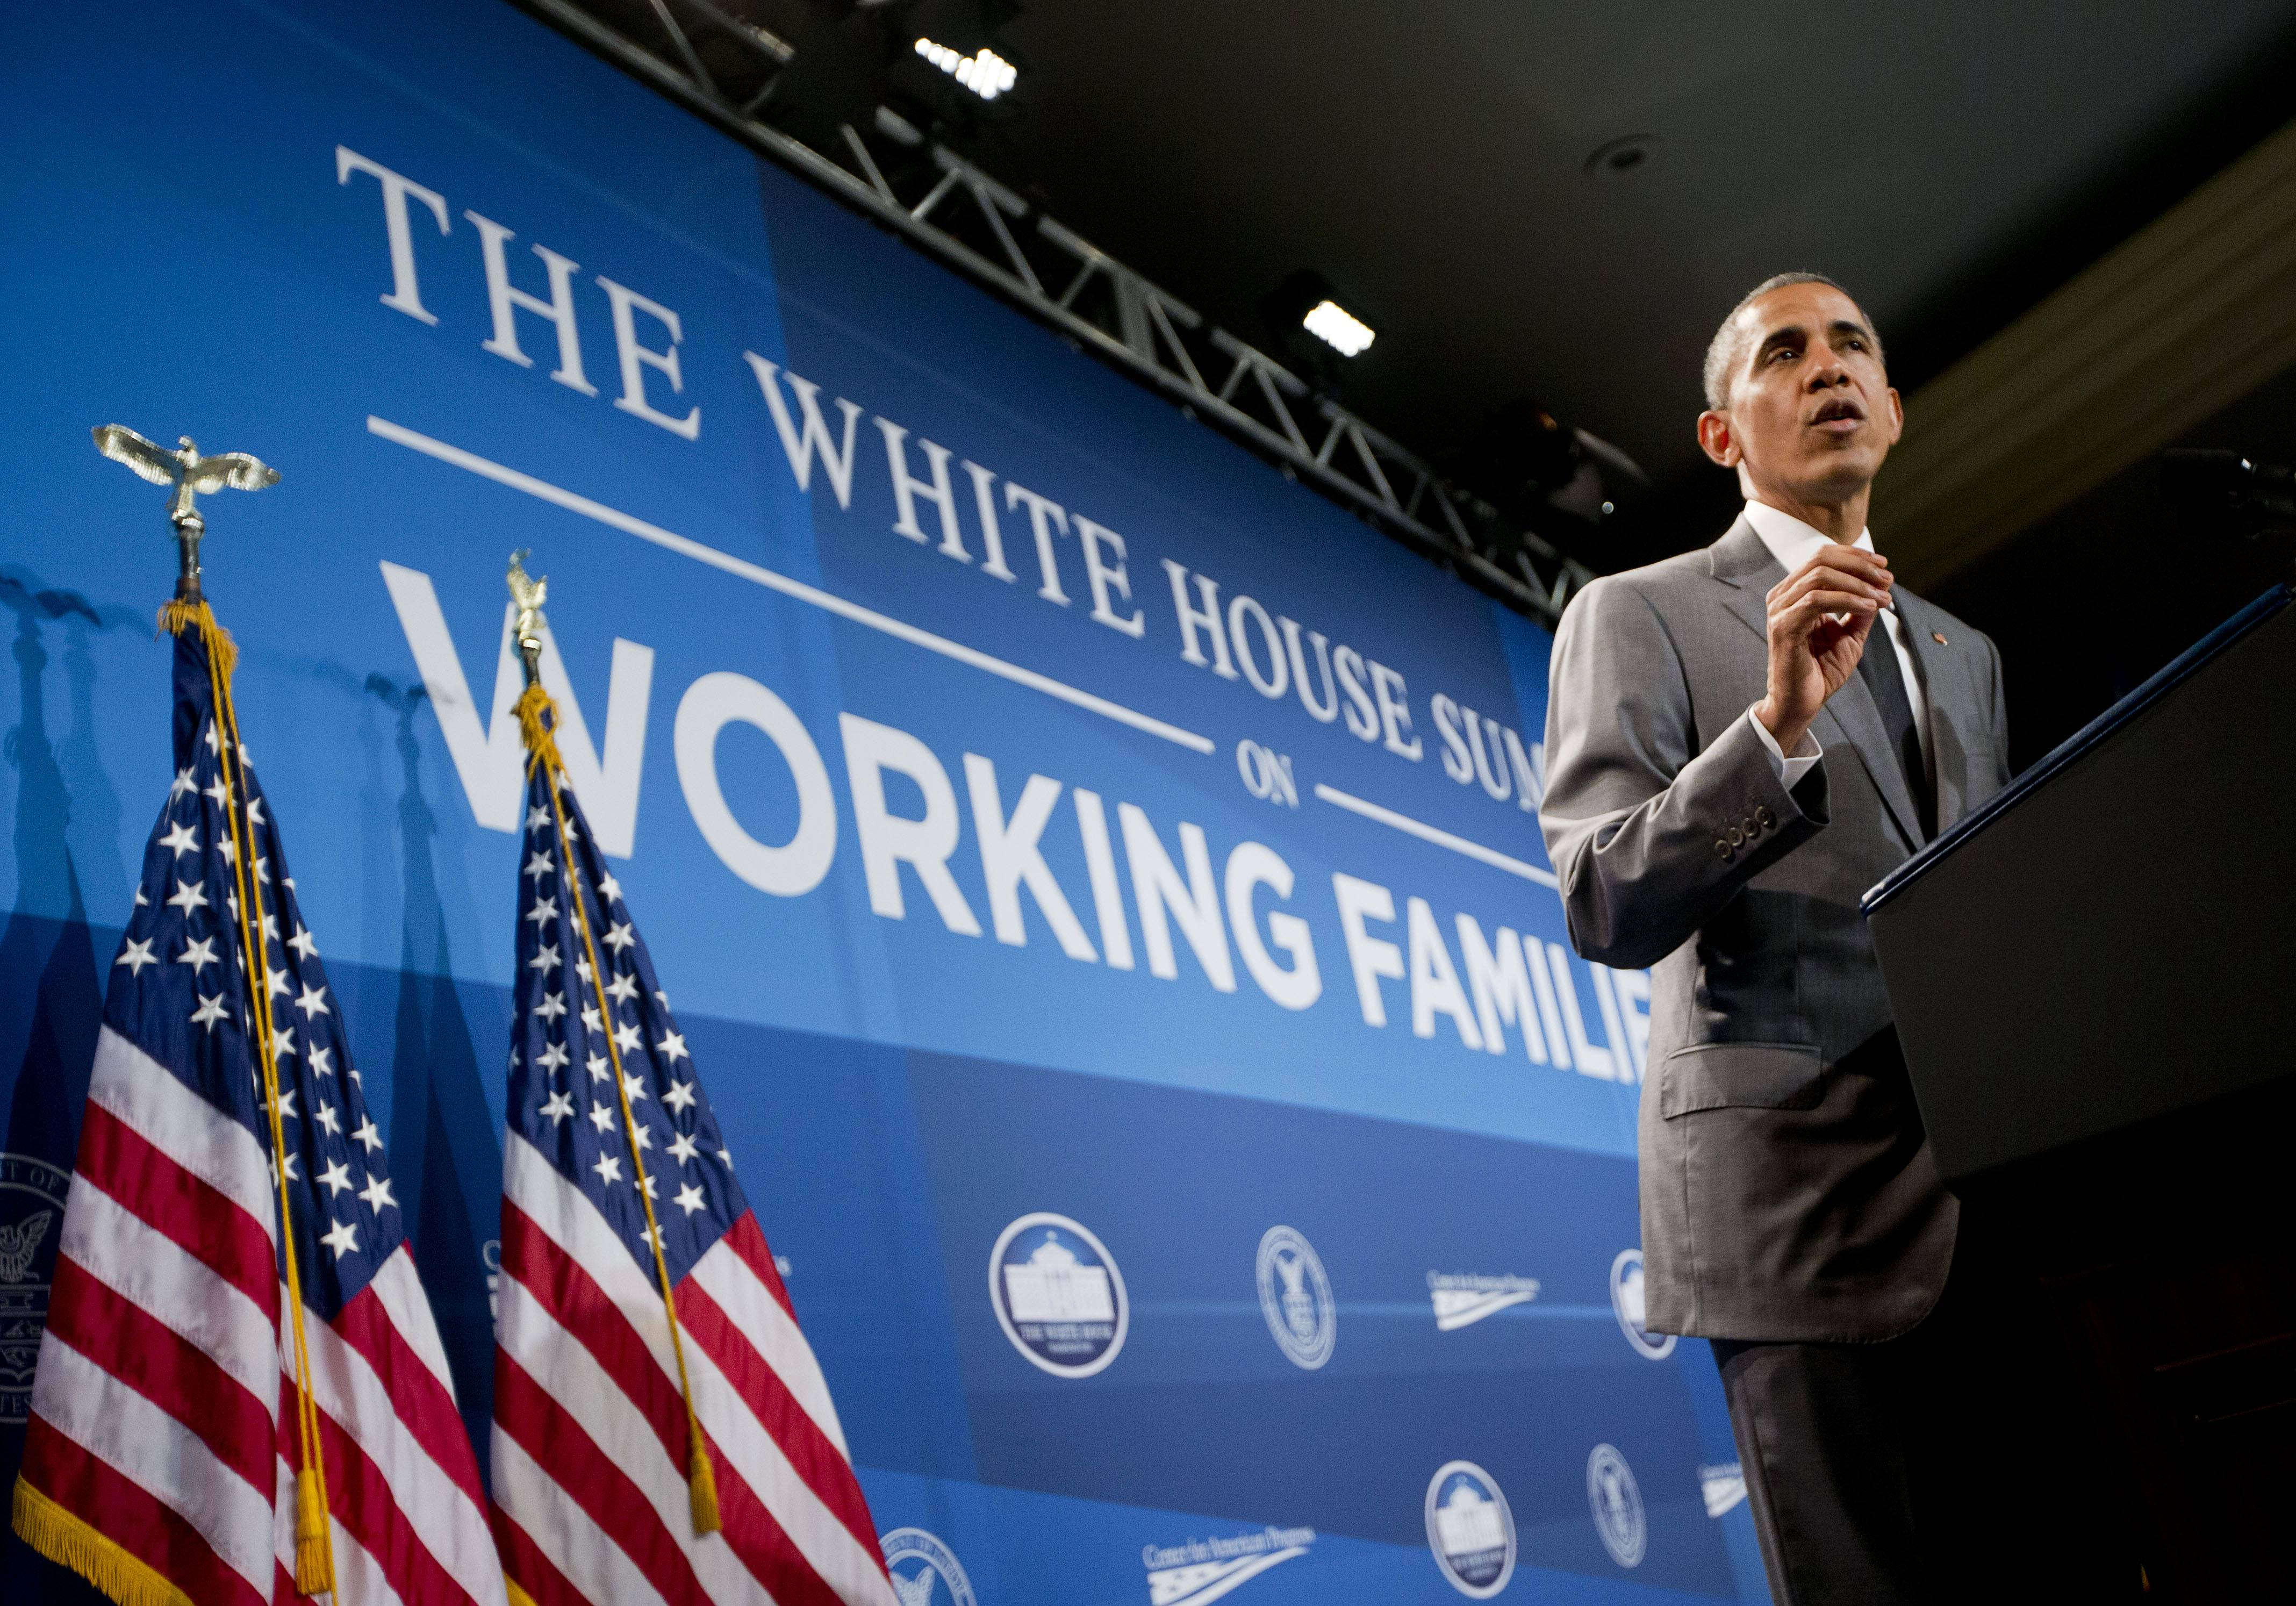 President Barack Obama, speaking at the White House Summit on Working Families Monday in Washington, encouraged more employers to adopt family-friendly policies, part of a broader effort to convince employers that providing more flexibility is good for business as well as workers.